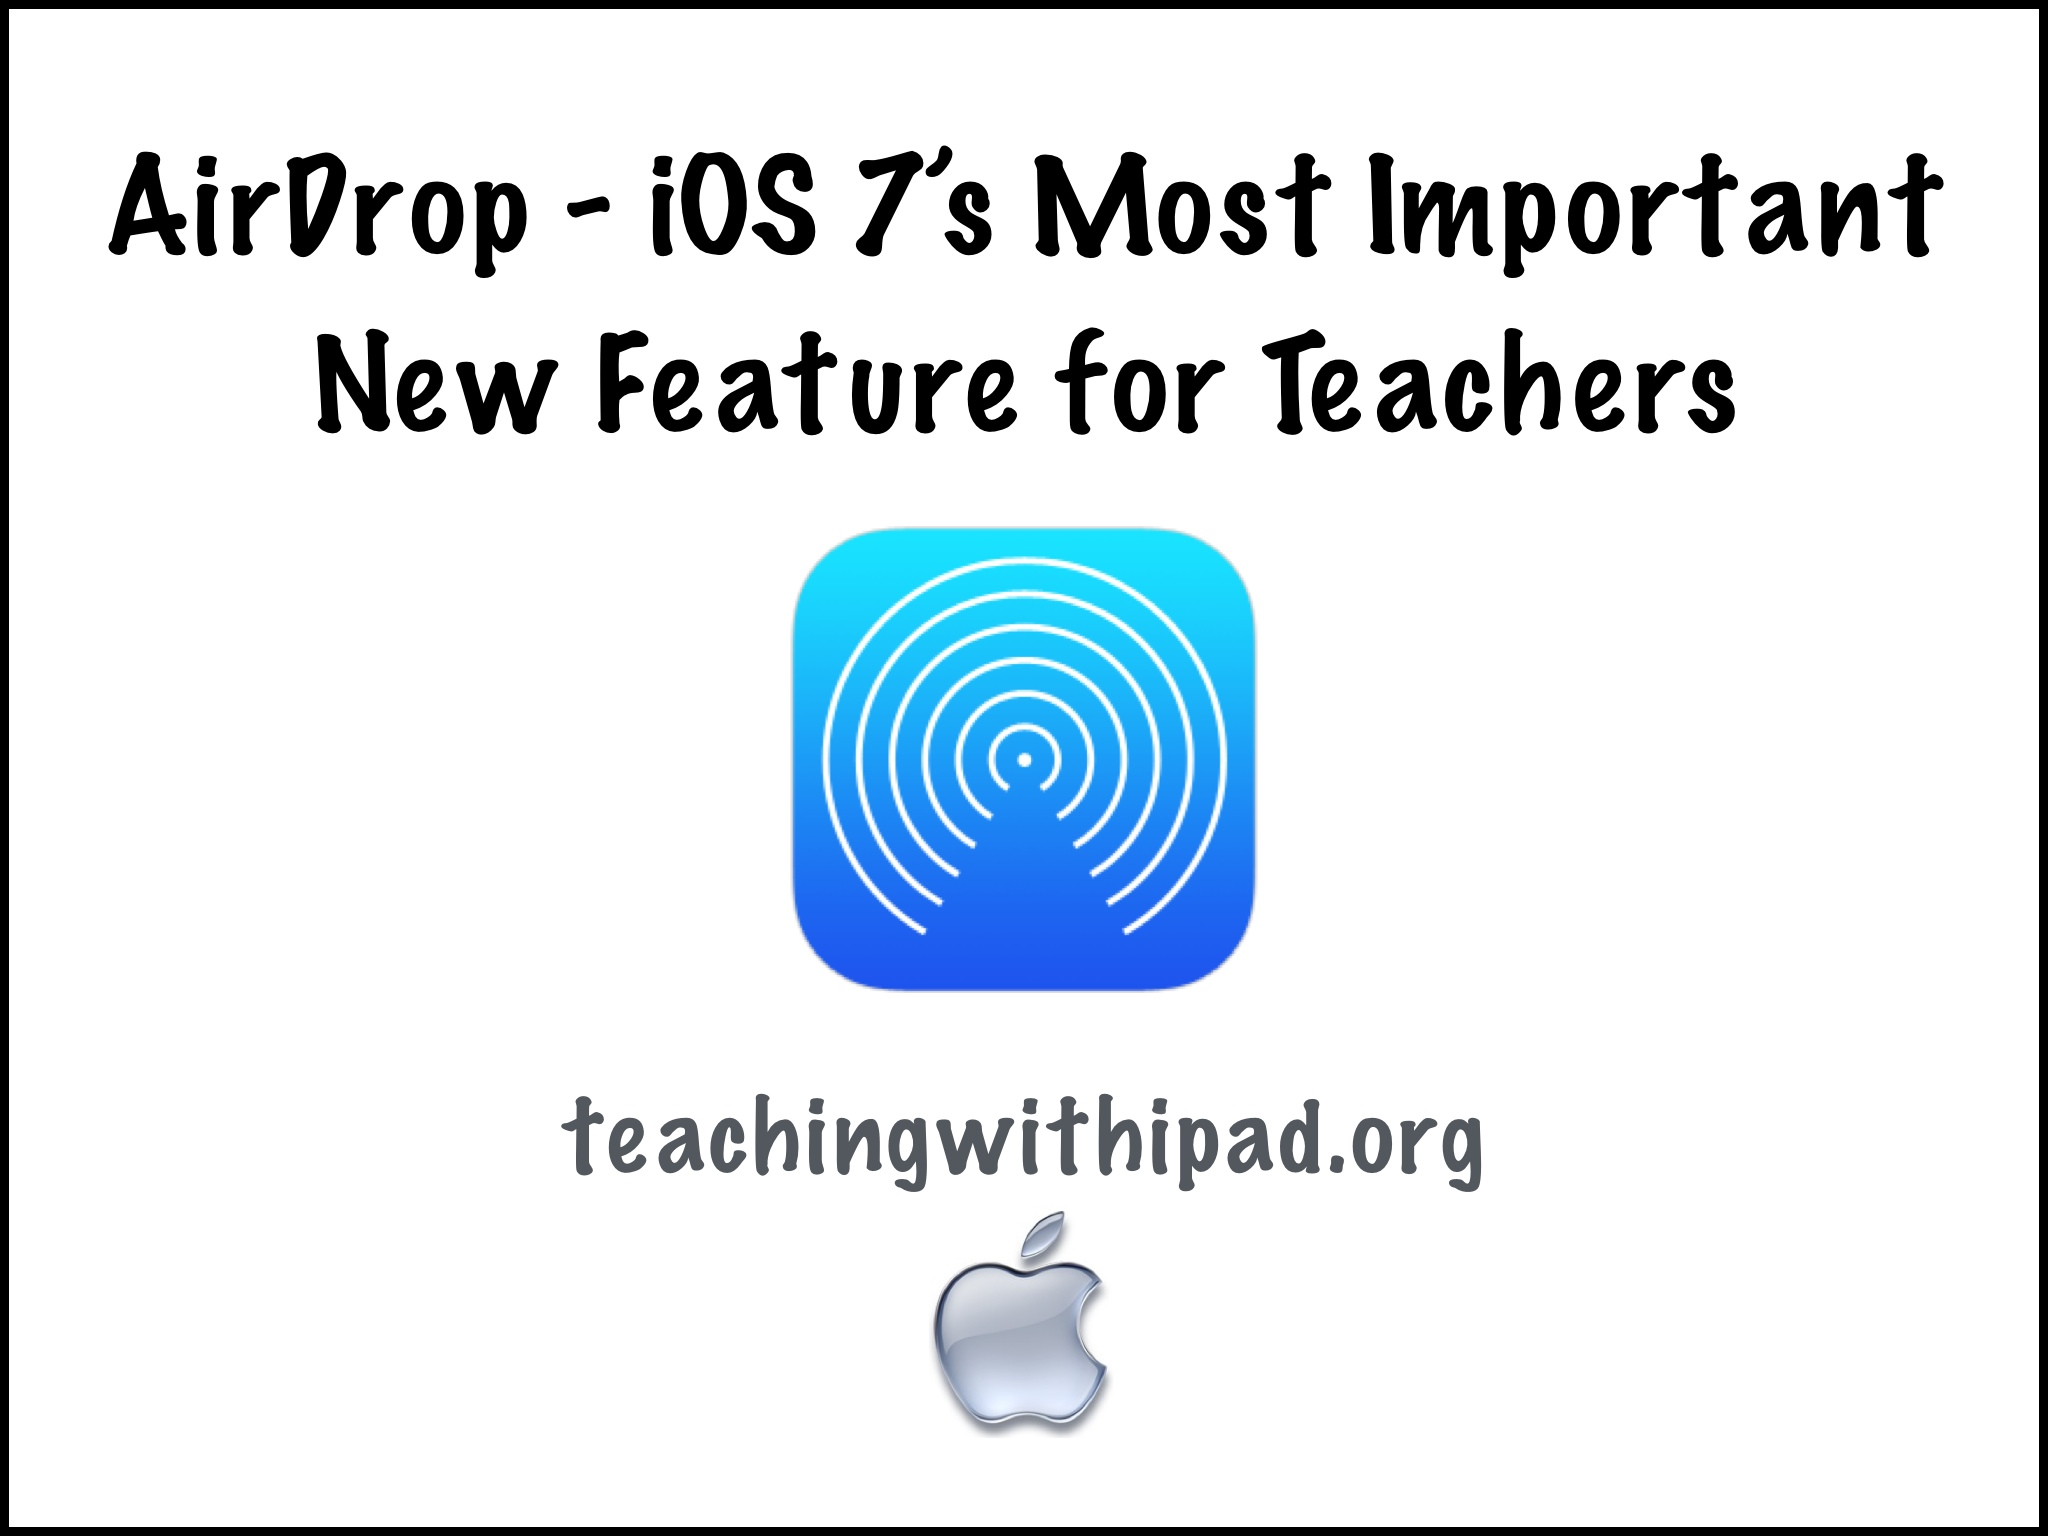 How To Use Airdrop €� Ios 7's Most Important New Feature For Teachers